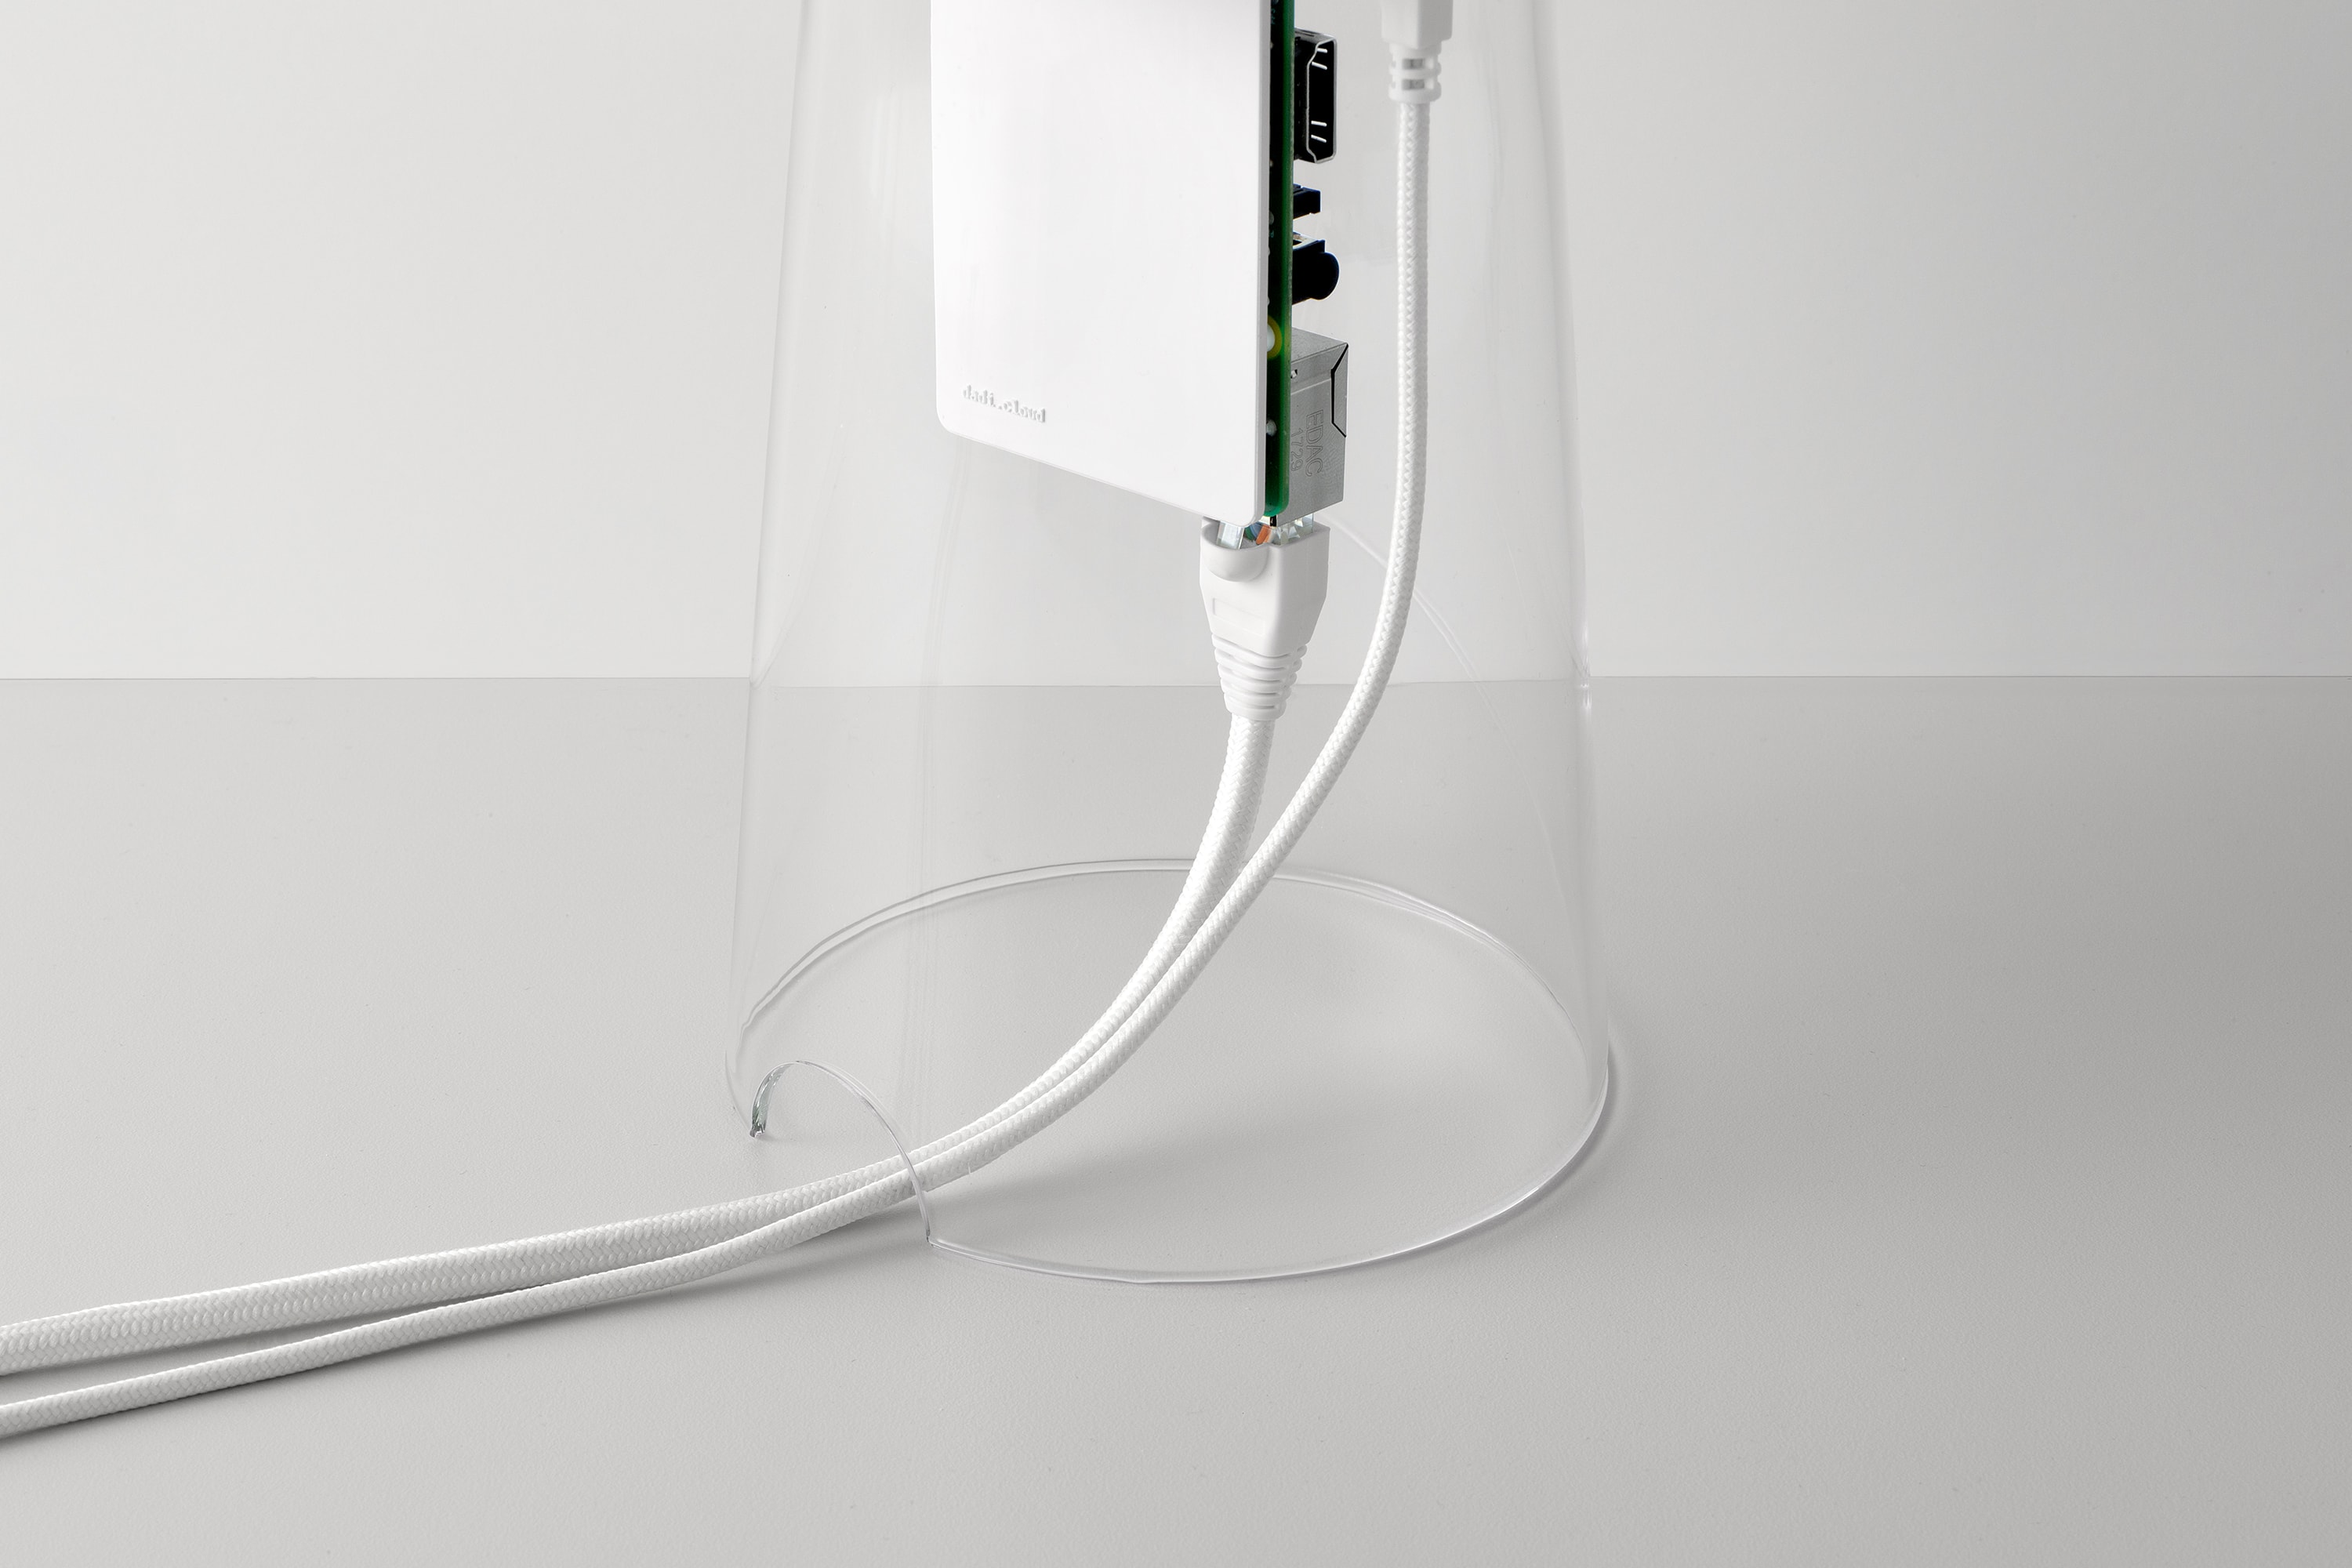 Perspective view of part of the DADI Founding Node. The components include; a glass casing, a plastic component which has a Raspberry Pi circuit board mounted on to it. There are cables connected to the Raspberry Pi which exit the glass casing through a small semi-circle shaped gap.